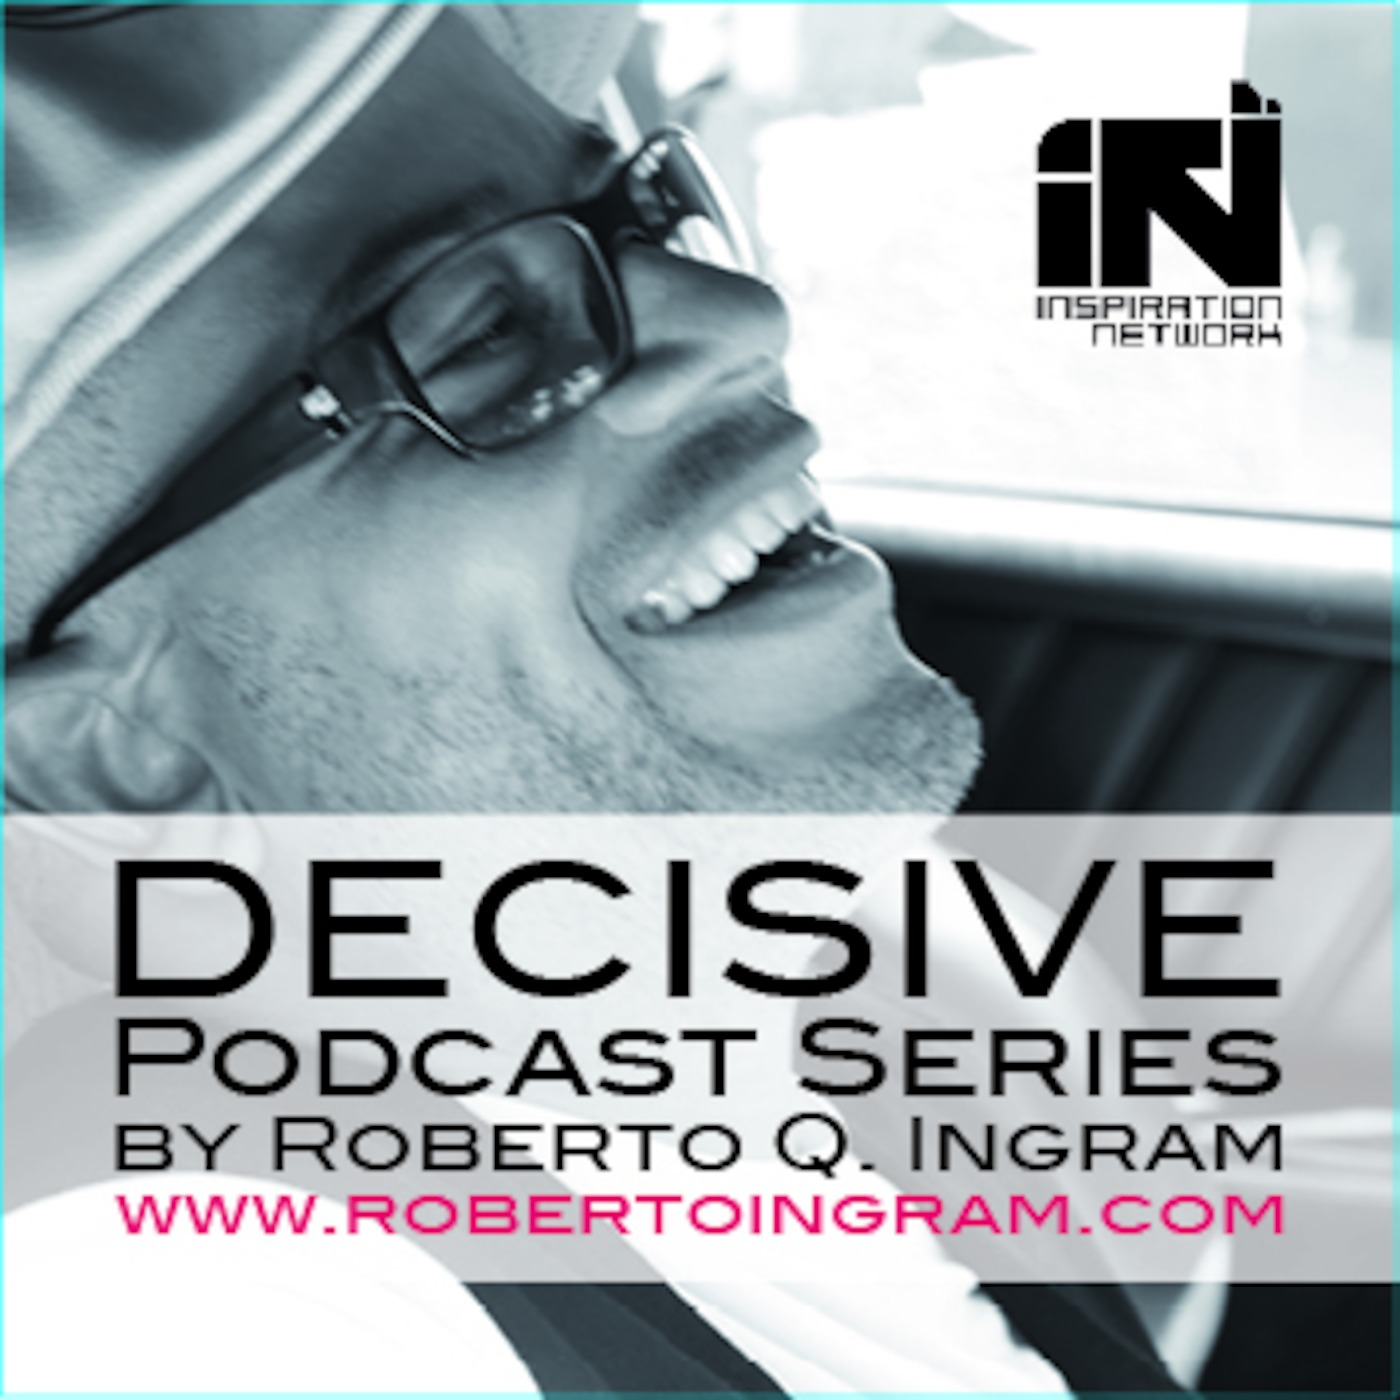 Decisive Podcast Series Exclusive